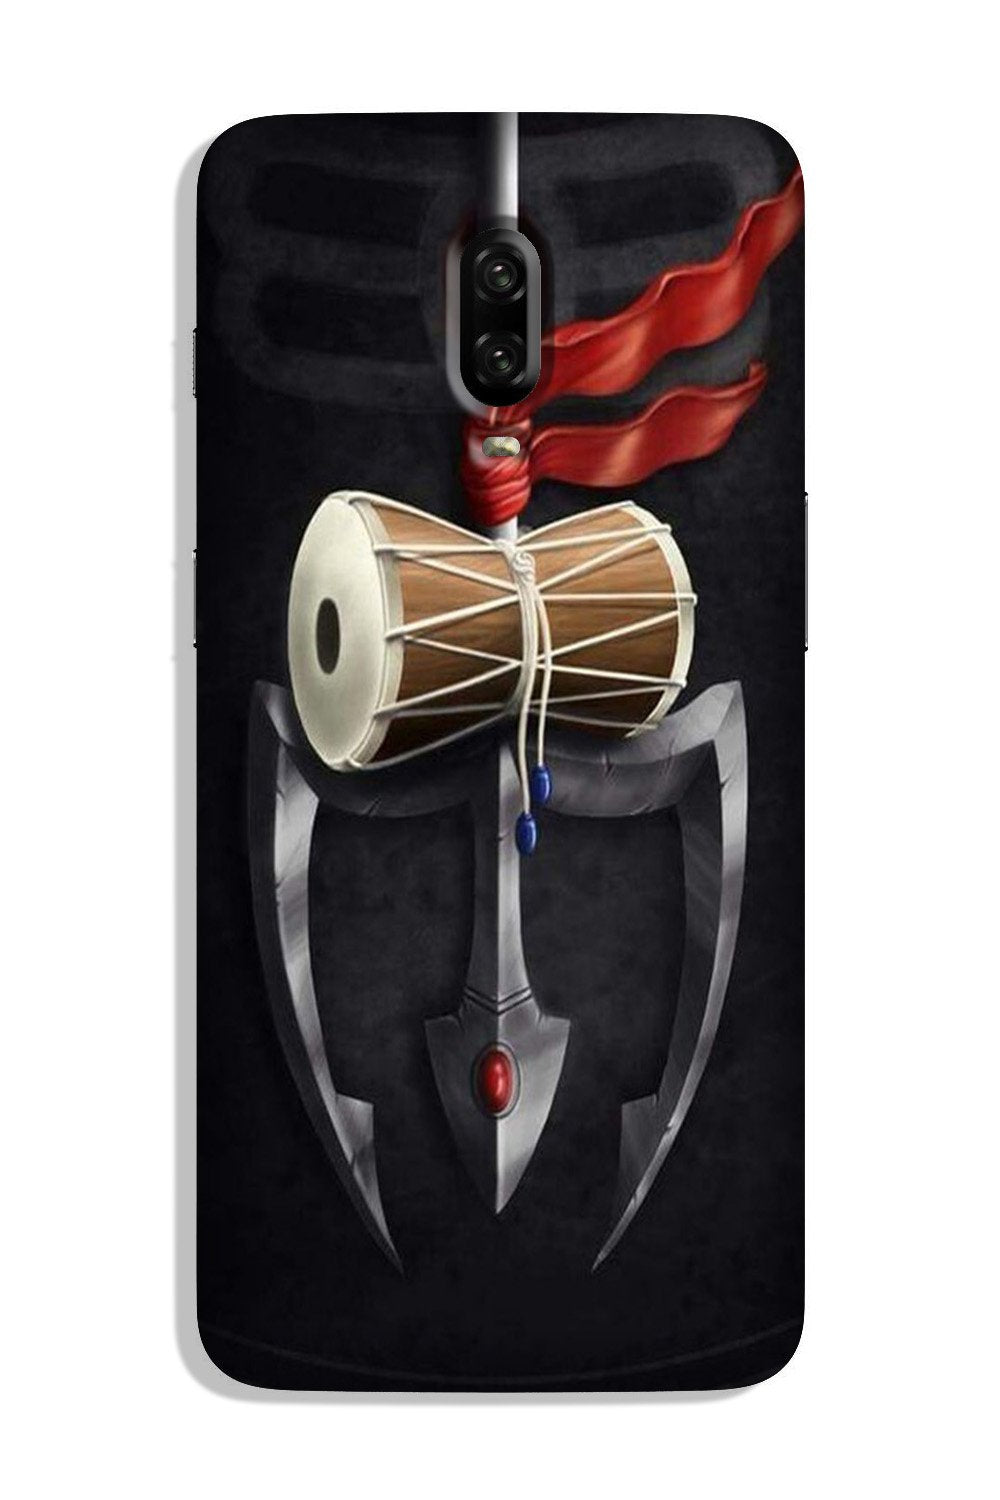 Lord Shiva Mahakal Case for OnePlus 6T